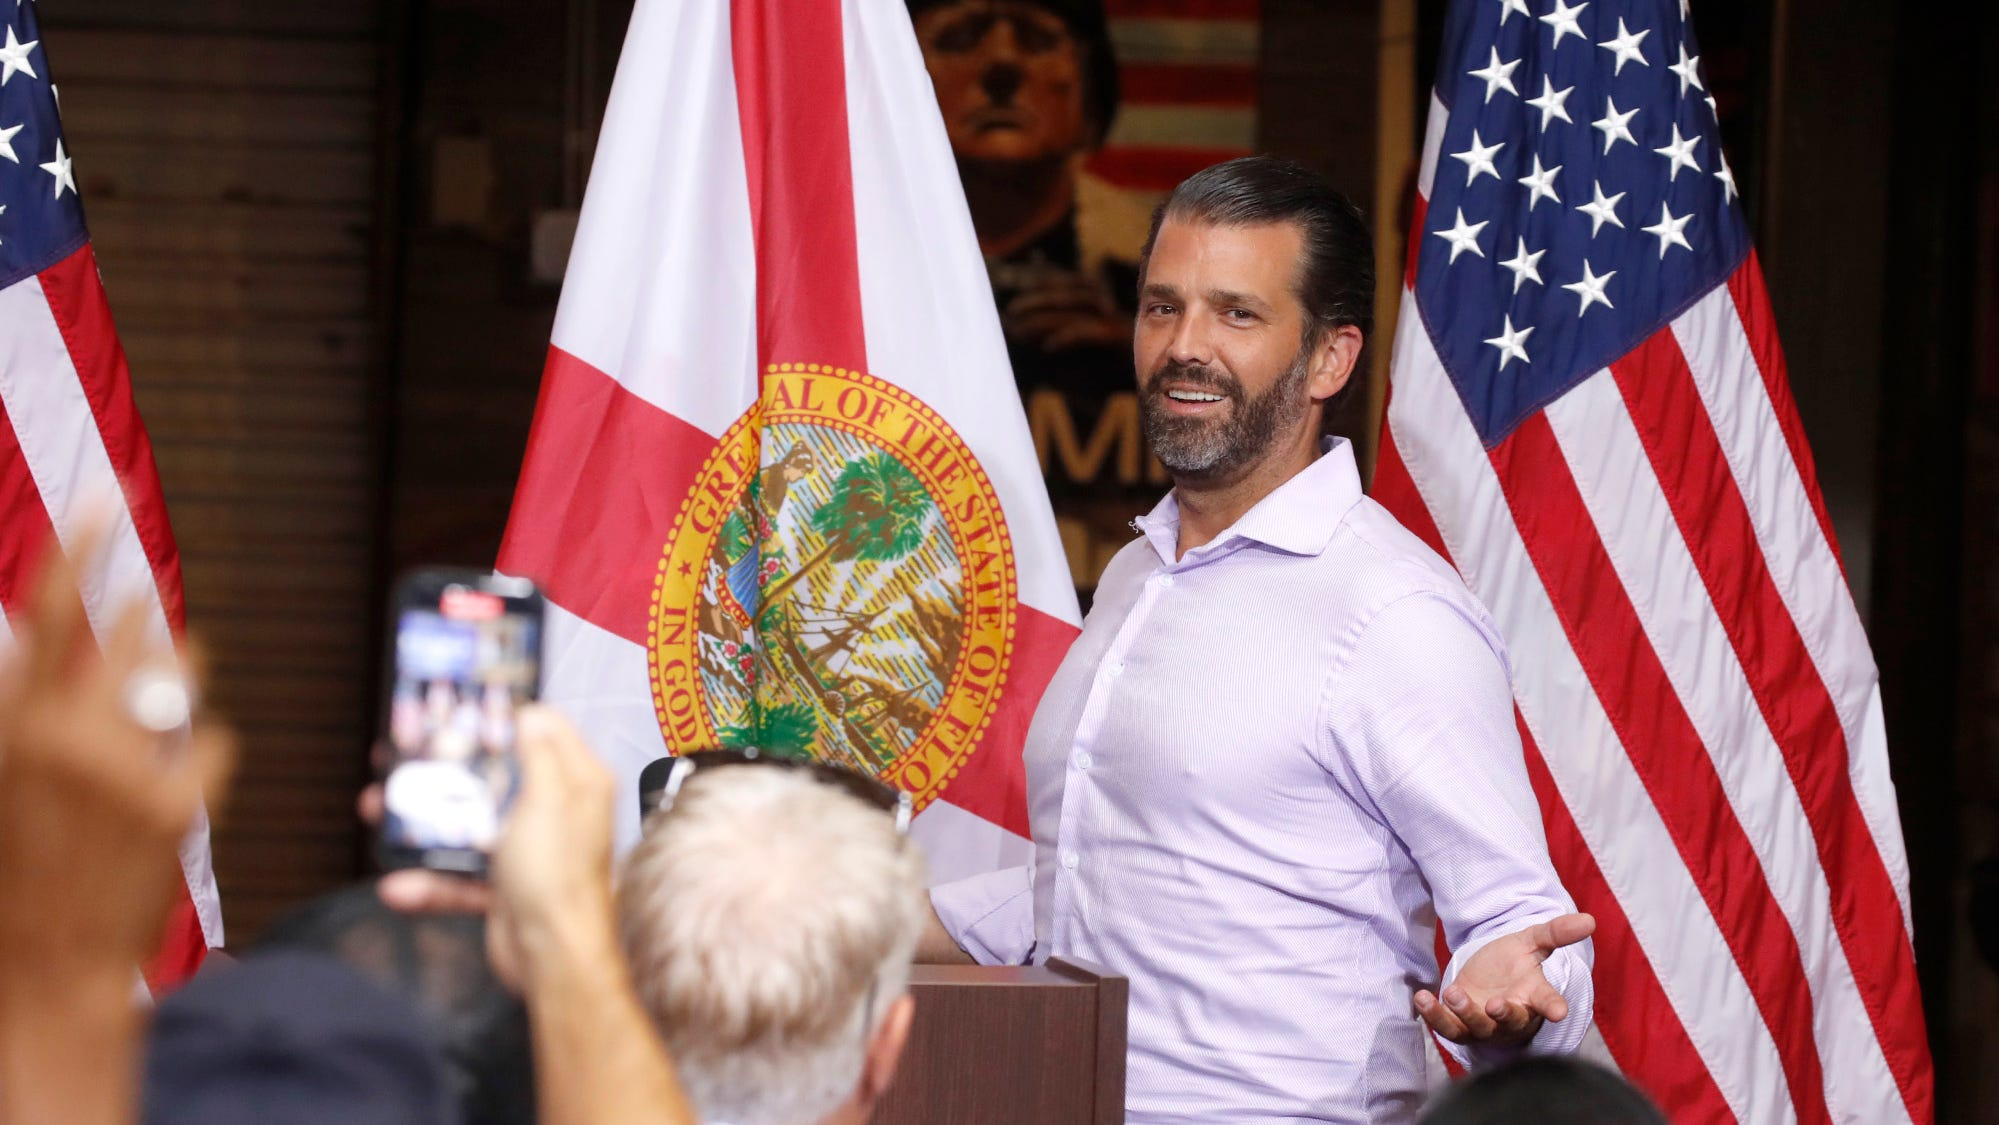 Donald Trump Jr to speak at Indian River County Fairgrounds